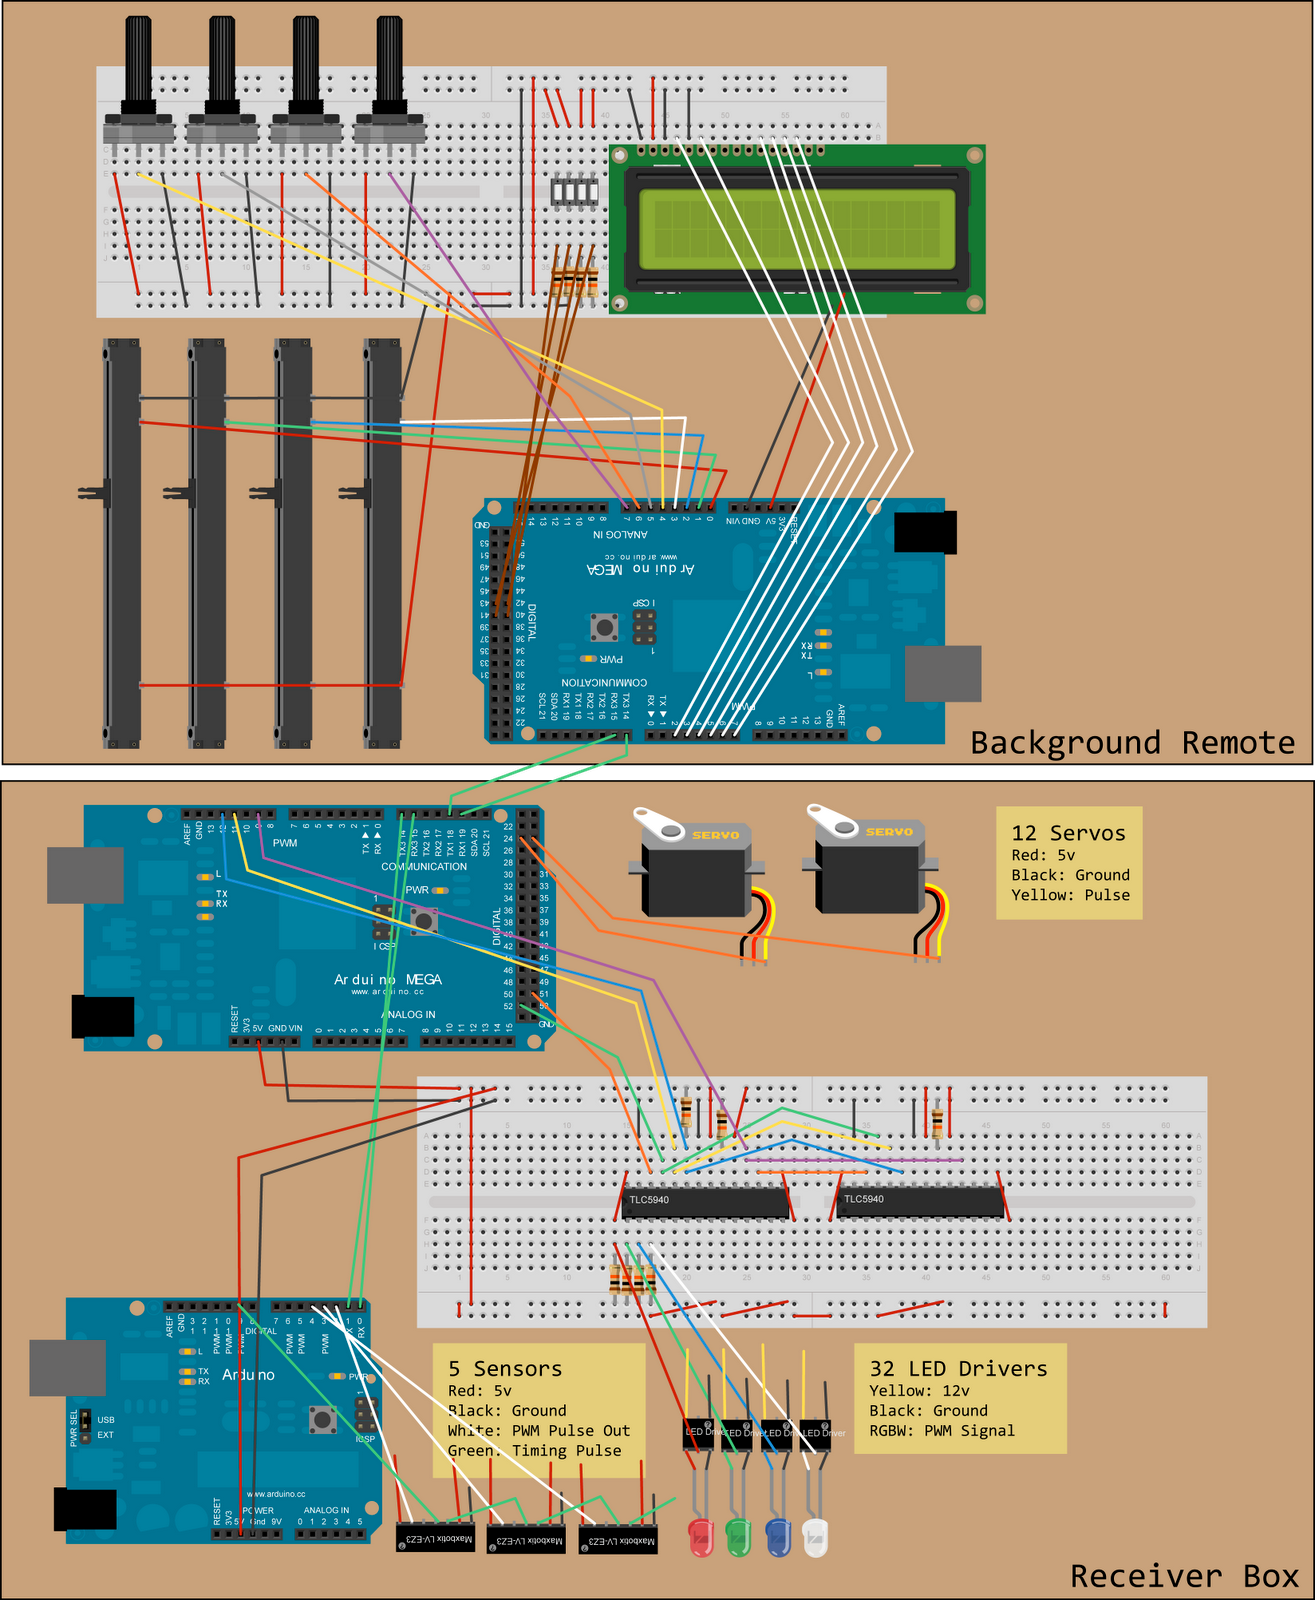 hight resolution of this is rough diagram of how the the electronics behind the wall are wired together